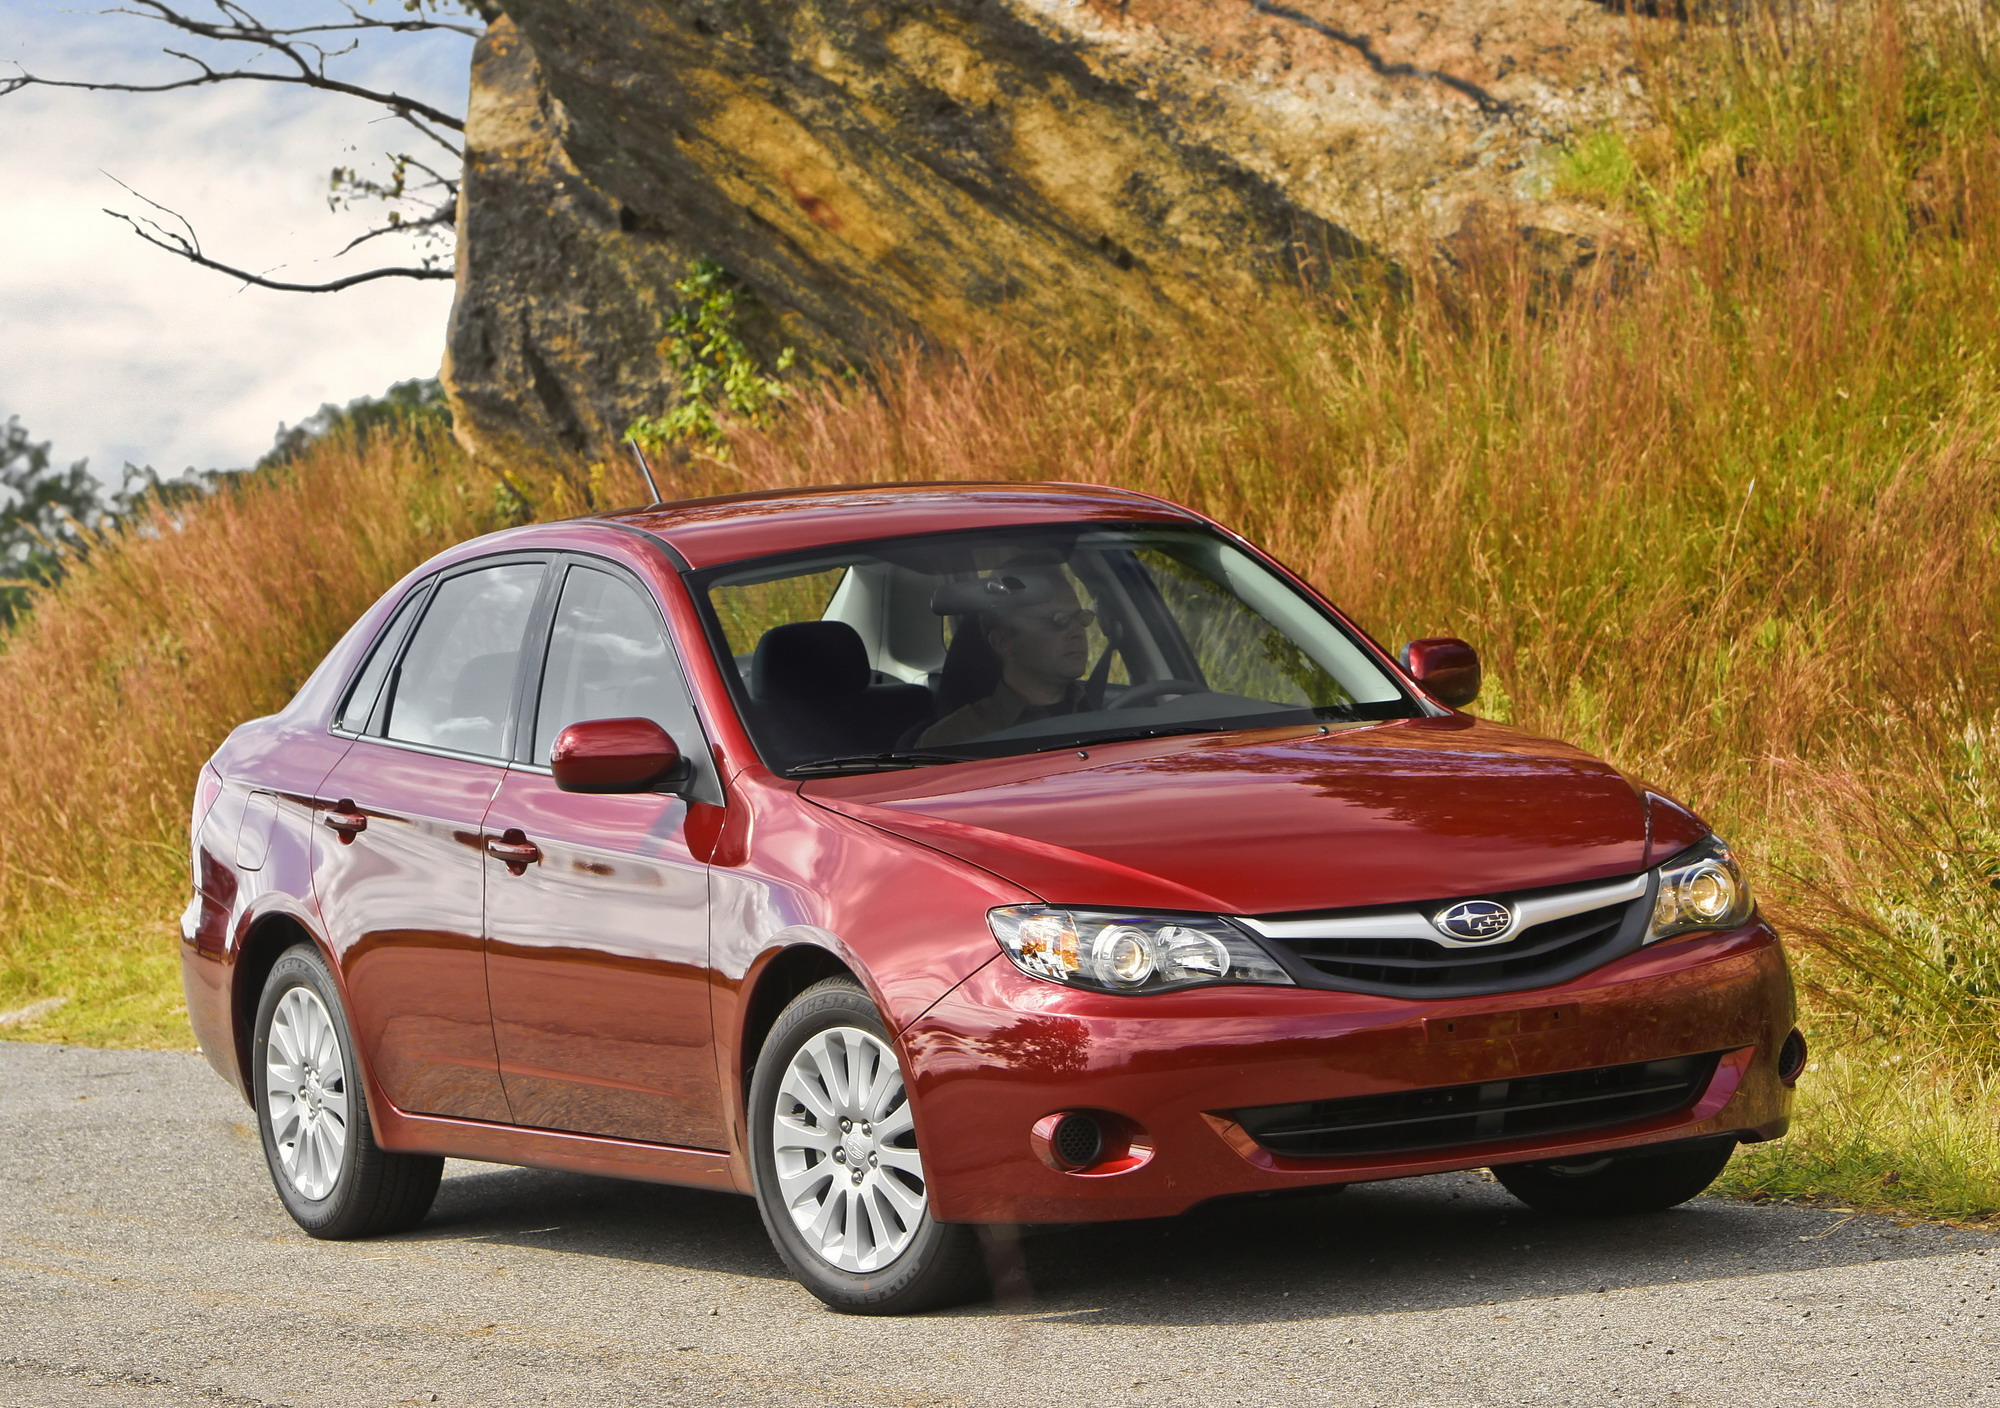 2011 Subaru Impreza Prices Announced News Top Speed